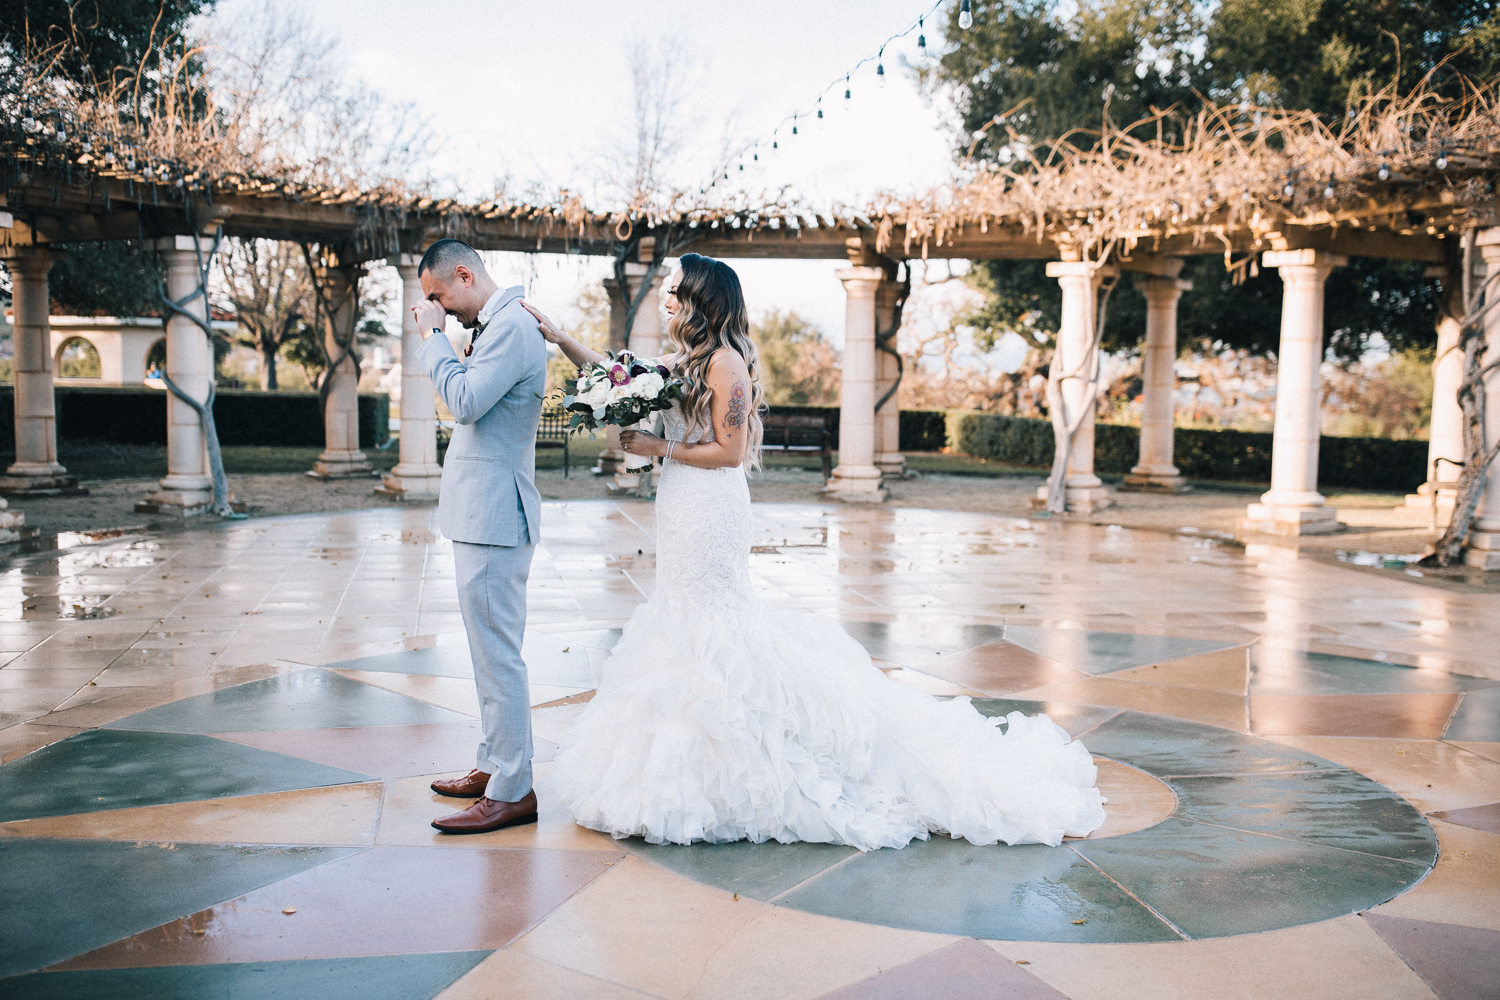 2019_01_ 202019.01.20 Santiago Wedding Blog Photos Edited For Web 0035.jpg